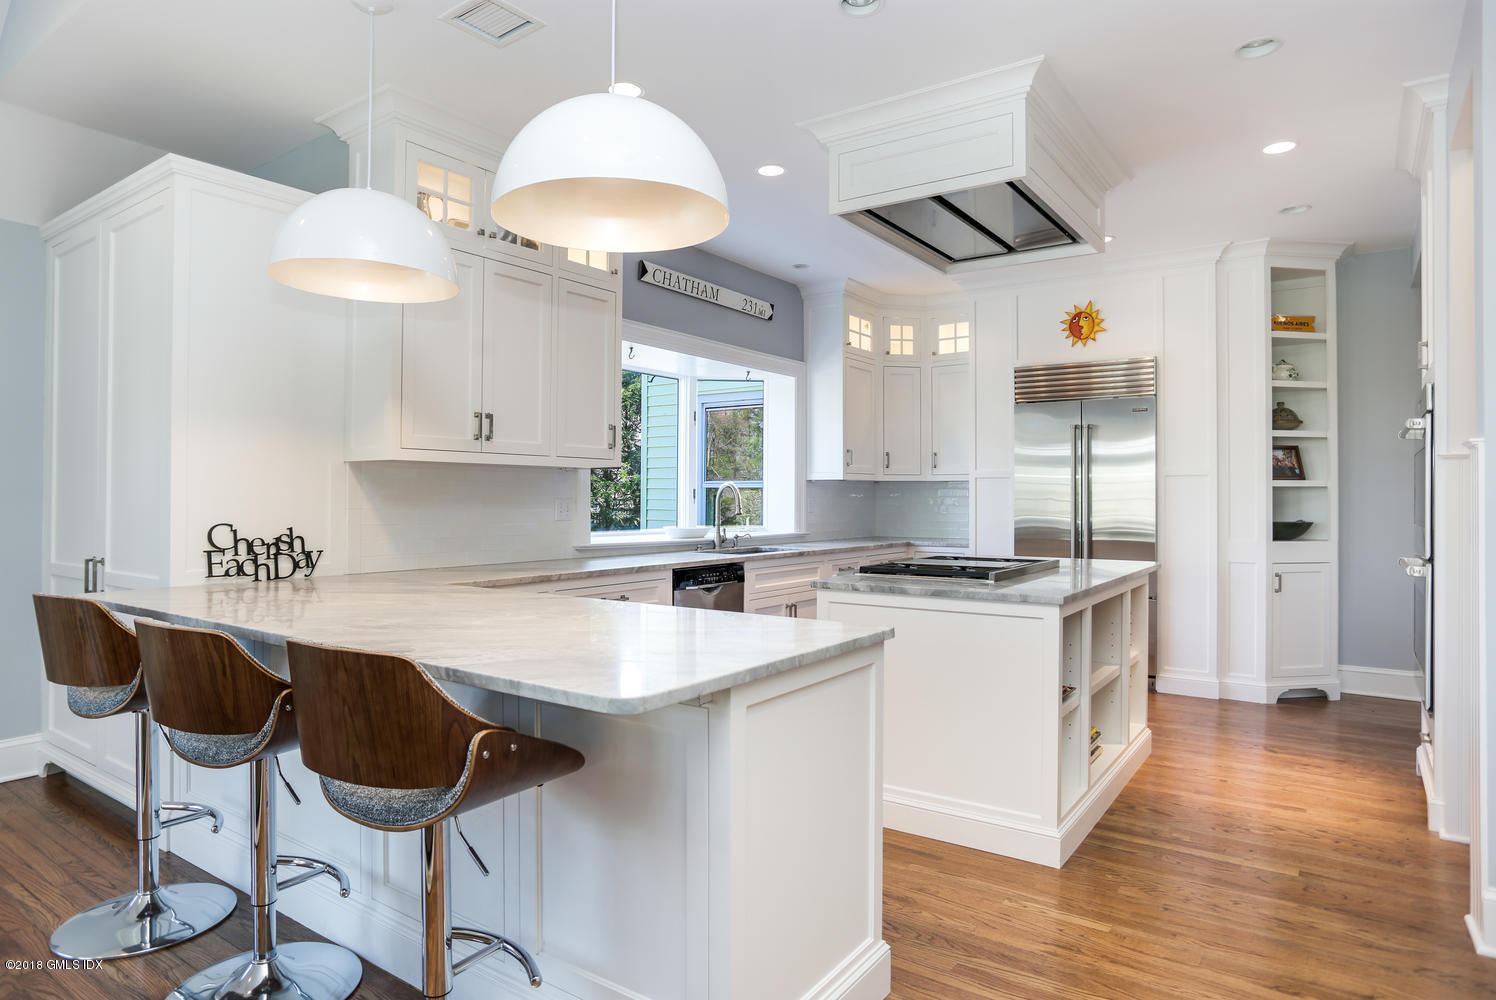 123 Maple Avenue,Greenwich,Connecticut 06830,5 Bedrooms Bedrooms,5 BathroomsBathrooms,Single family,Maple,102918